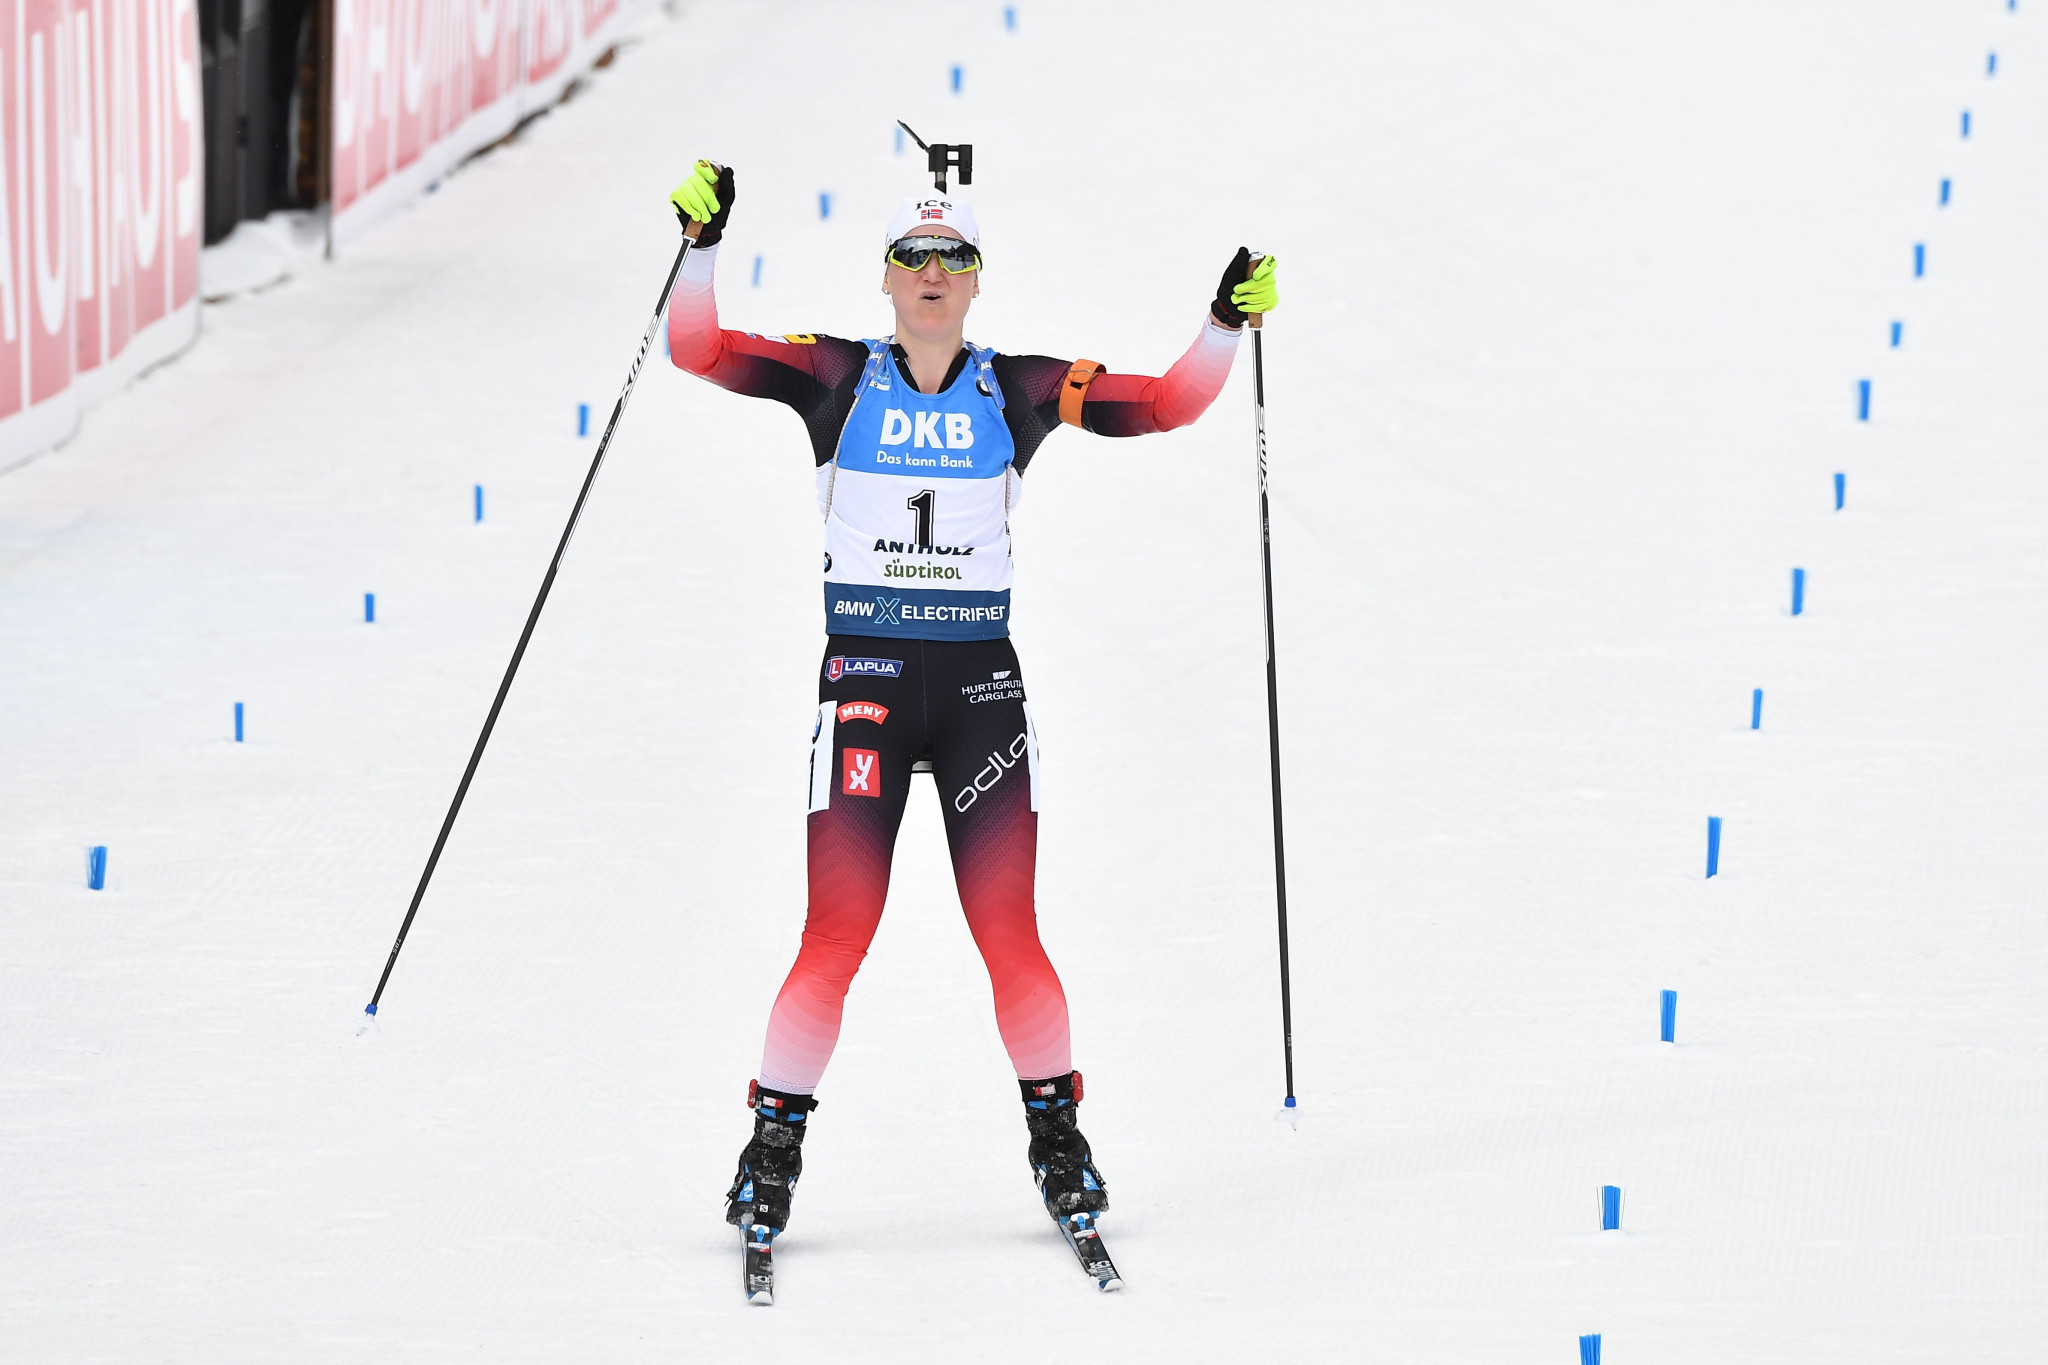 Magnificent Røiseland wins fifth gold as Biathlon World Championships conclude